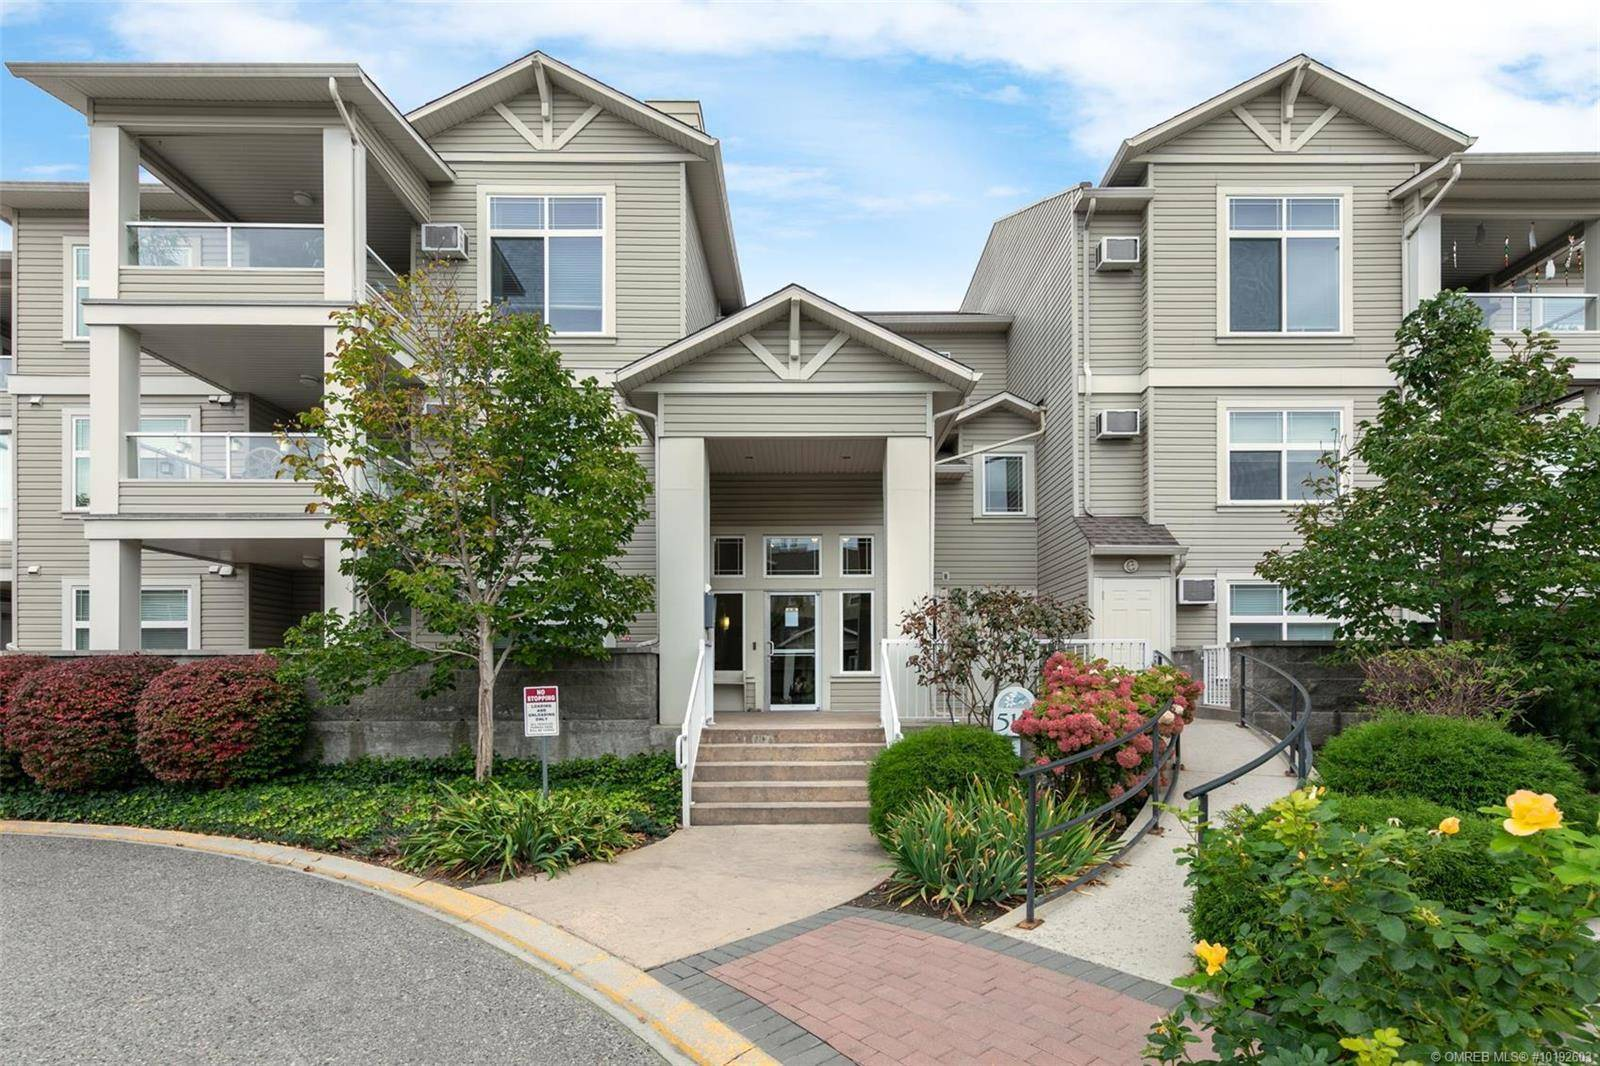 Condo for sale at 515 Houghton Rd Unit 214 Kelowna British Columbia - MLS: 10192603